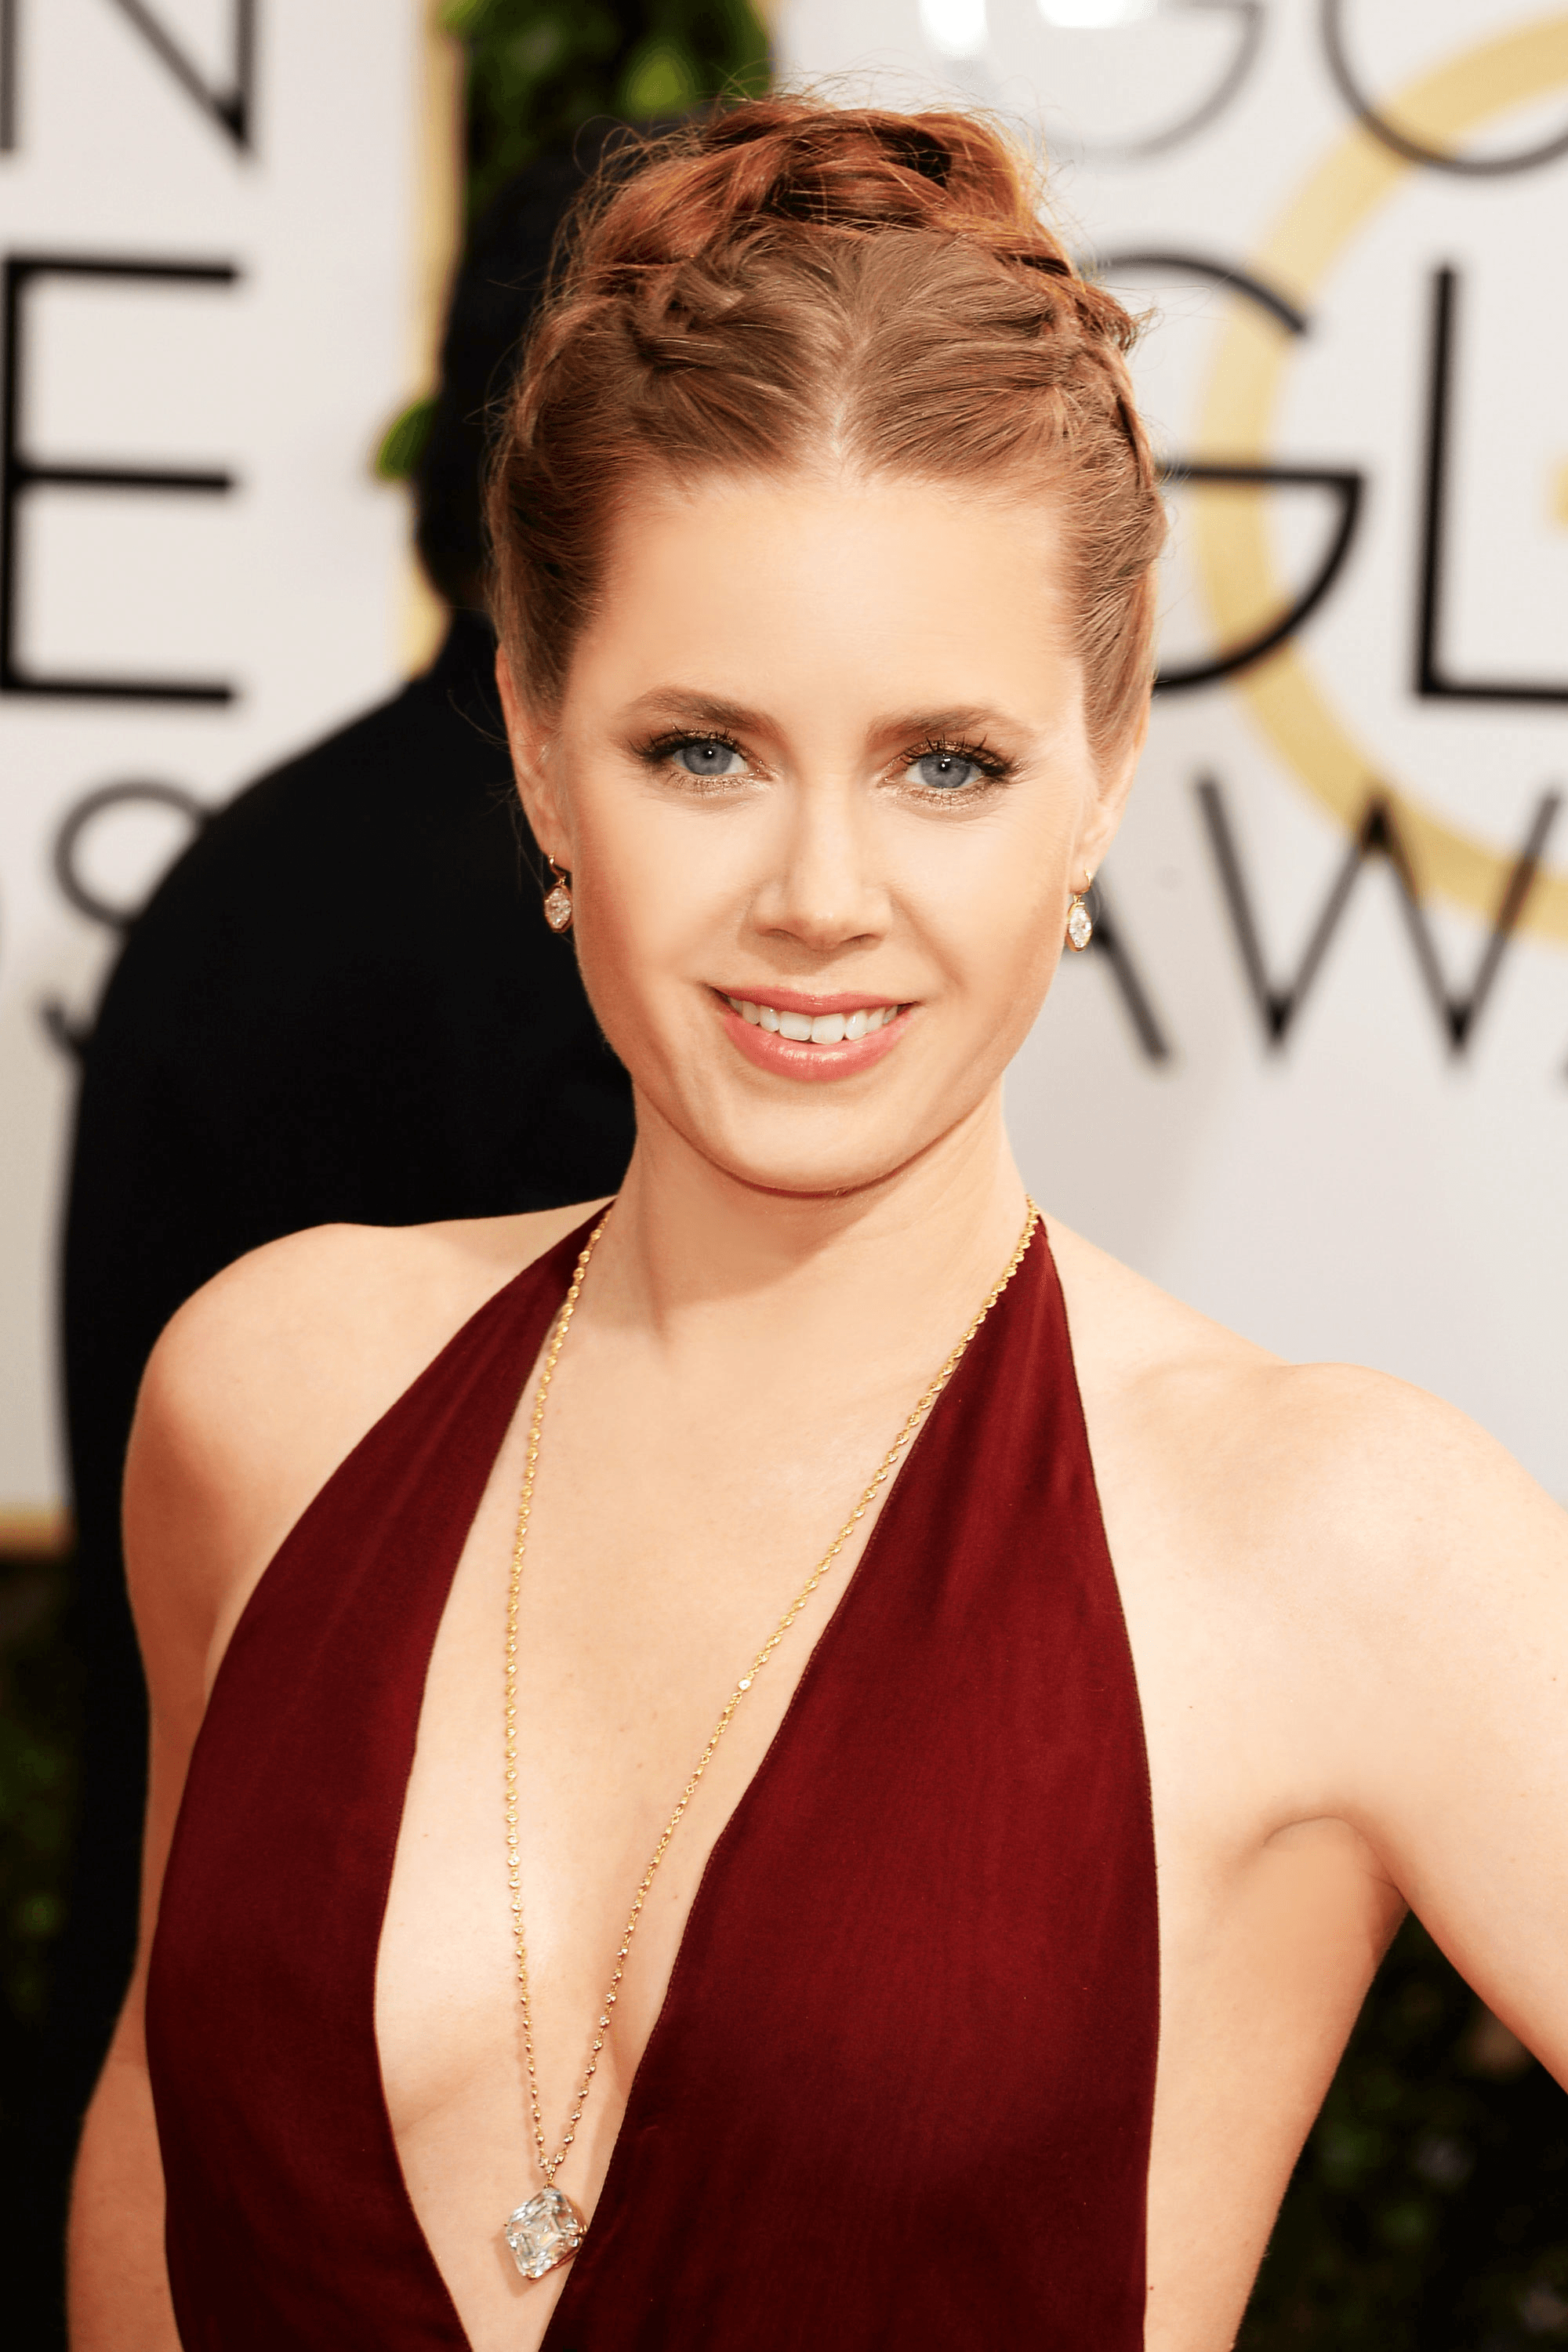 Amy Adams bra size